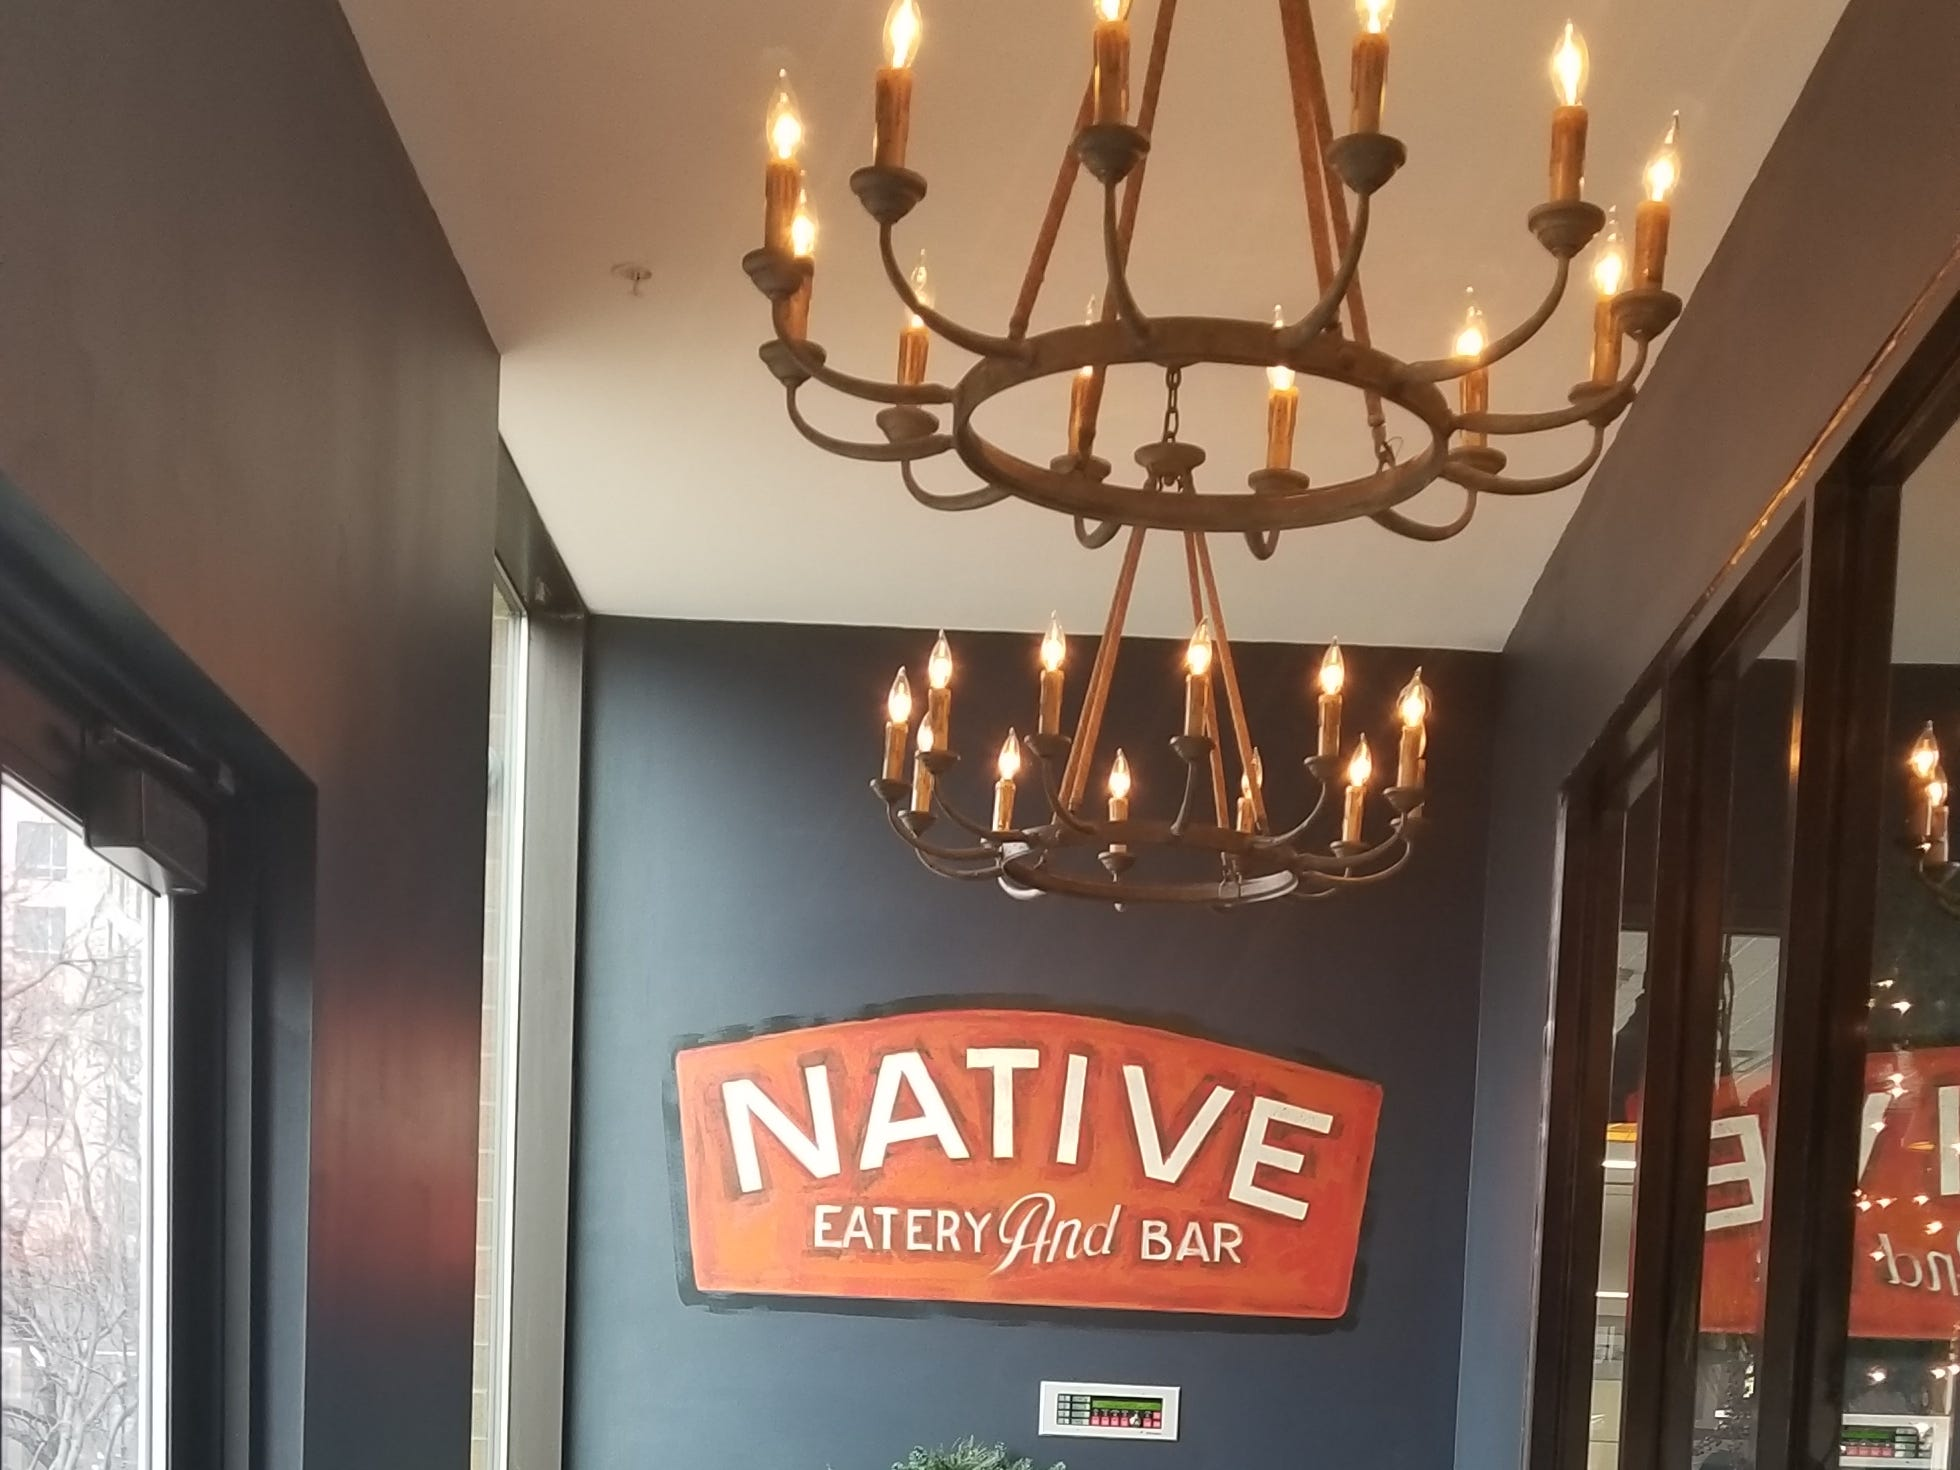 Entry to Native Eatery and Bar in downtown Rochester.